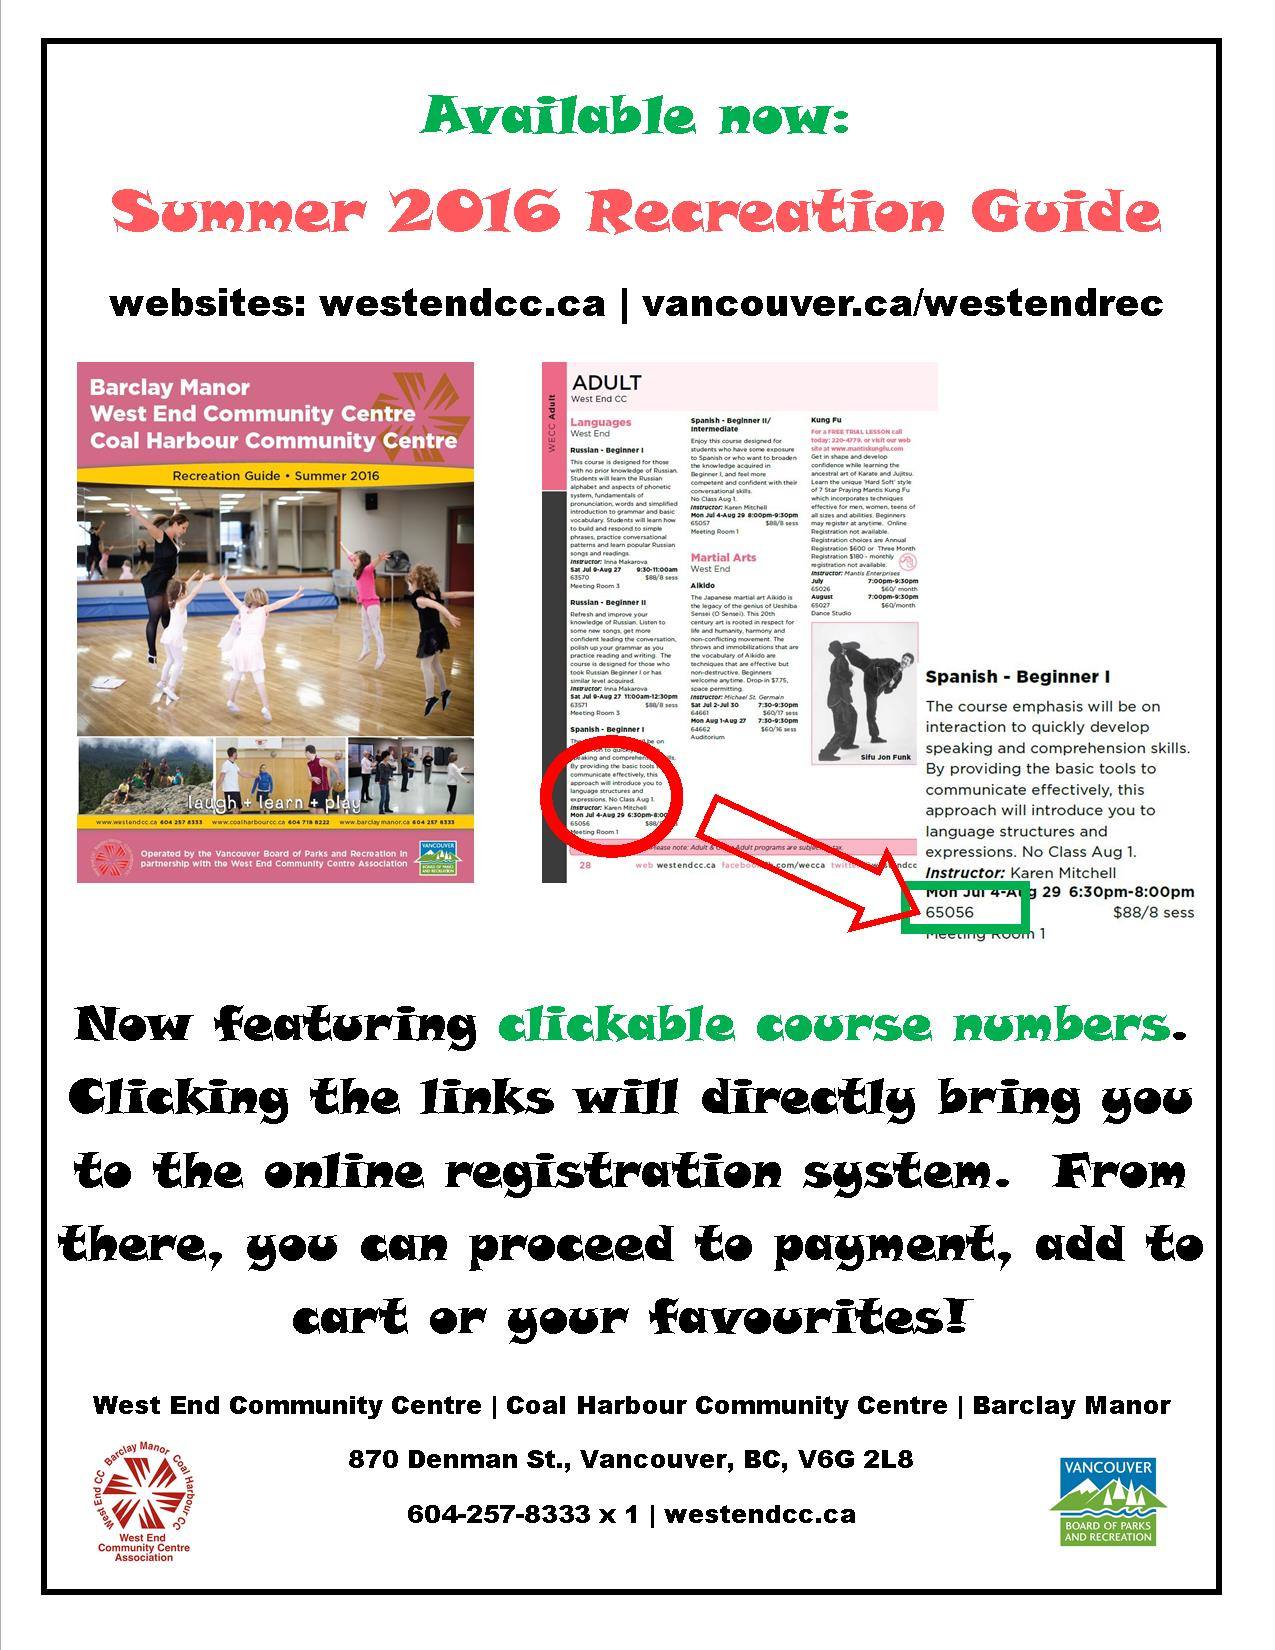 summer-rec-guide-clickable-link